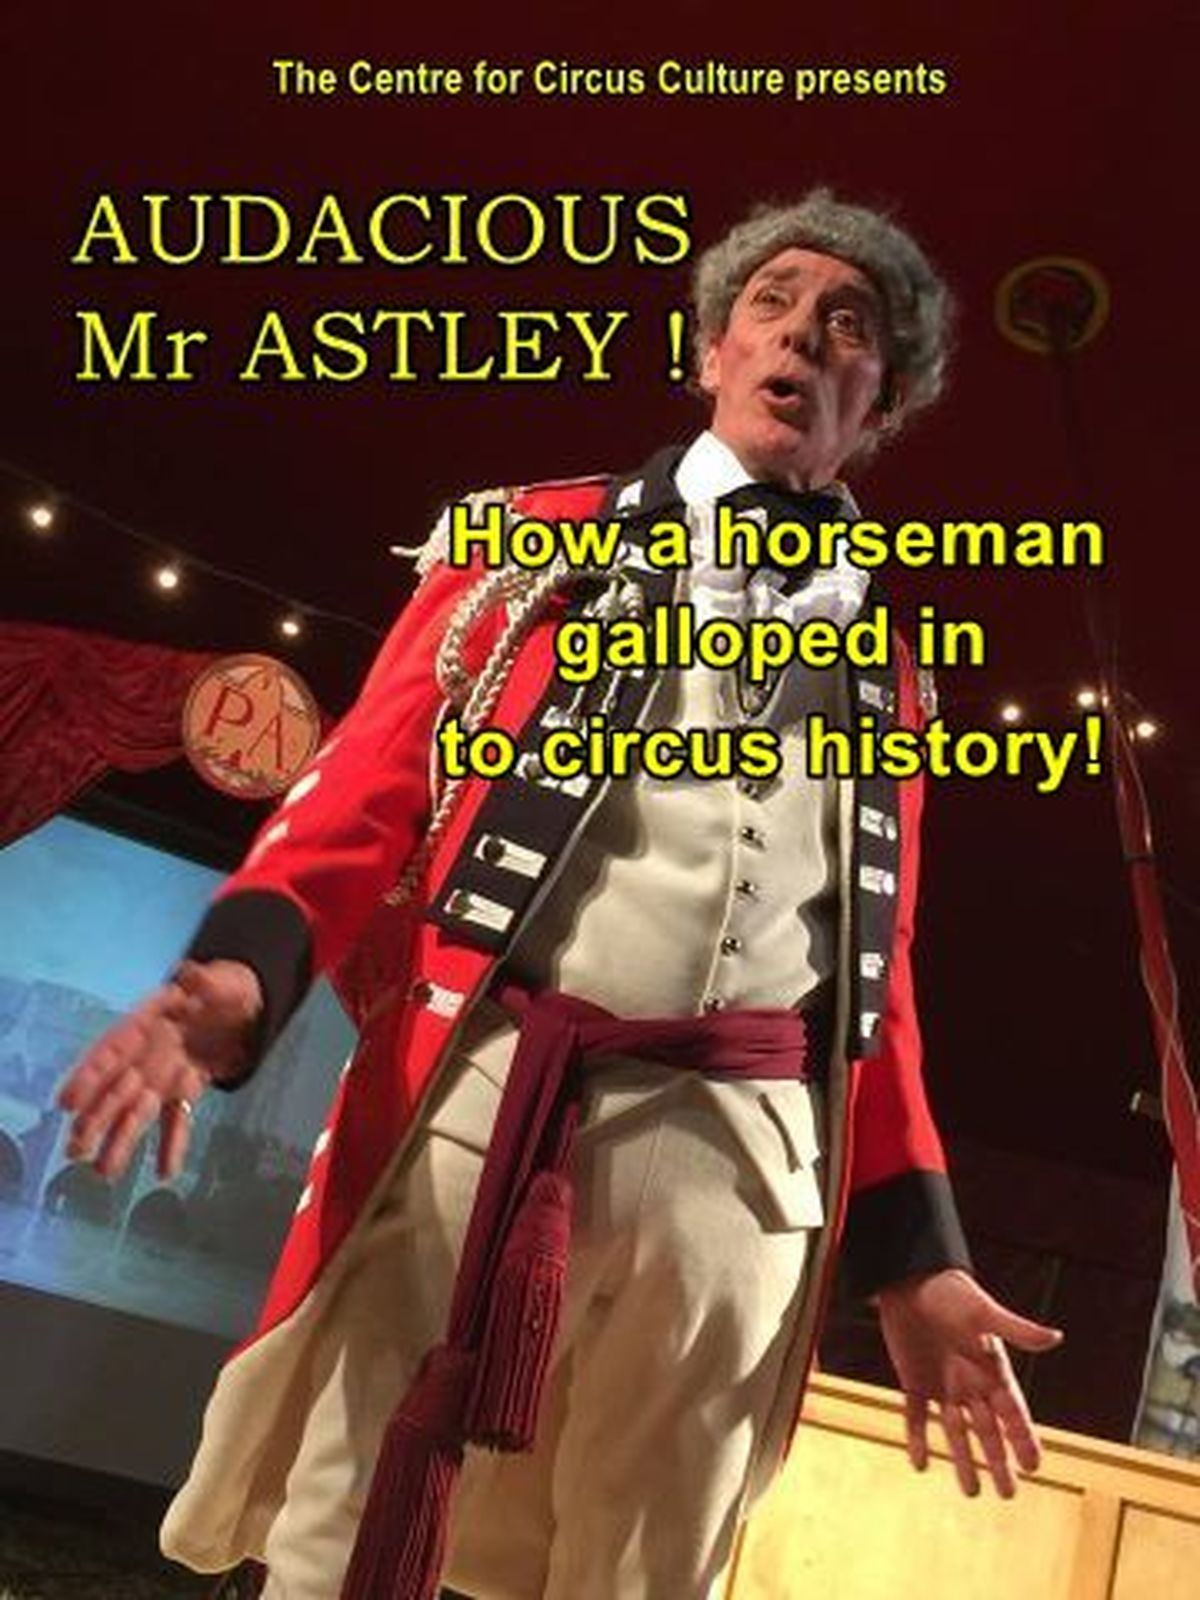 Audacious Mr Astley - Circus Events - CircusTalk